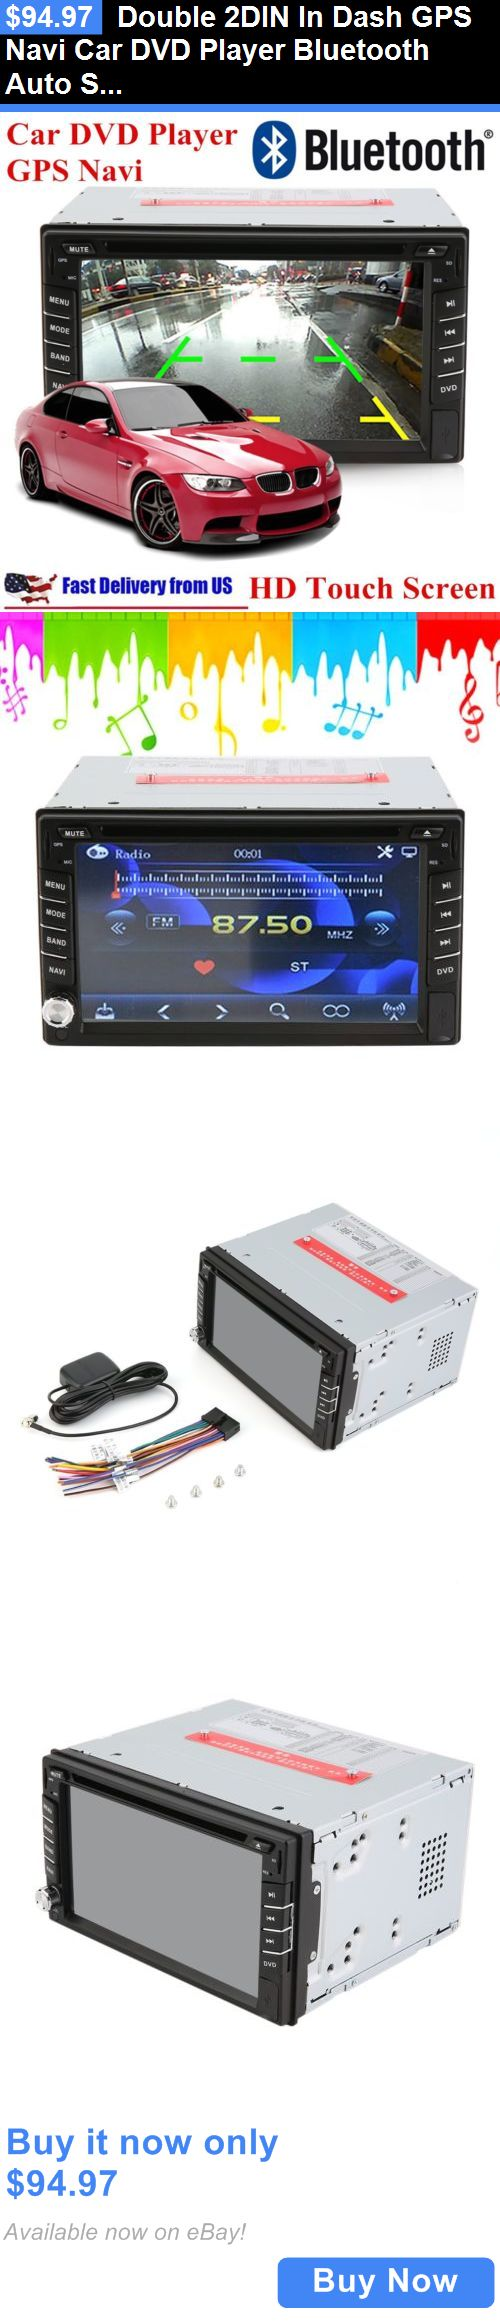 Vehicle Electronics And GPS: Double 2Din In Dash Gps Navi Car Dvd Player Bluetooth Auto Stereo Radio Ipod+Cam BUY IT NOW ONLY: $94.97